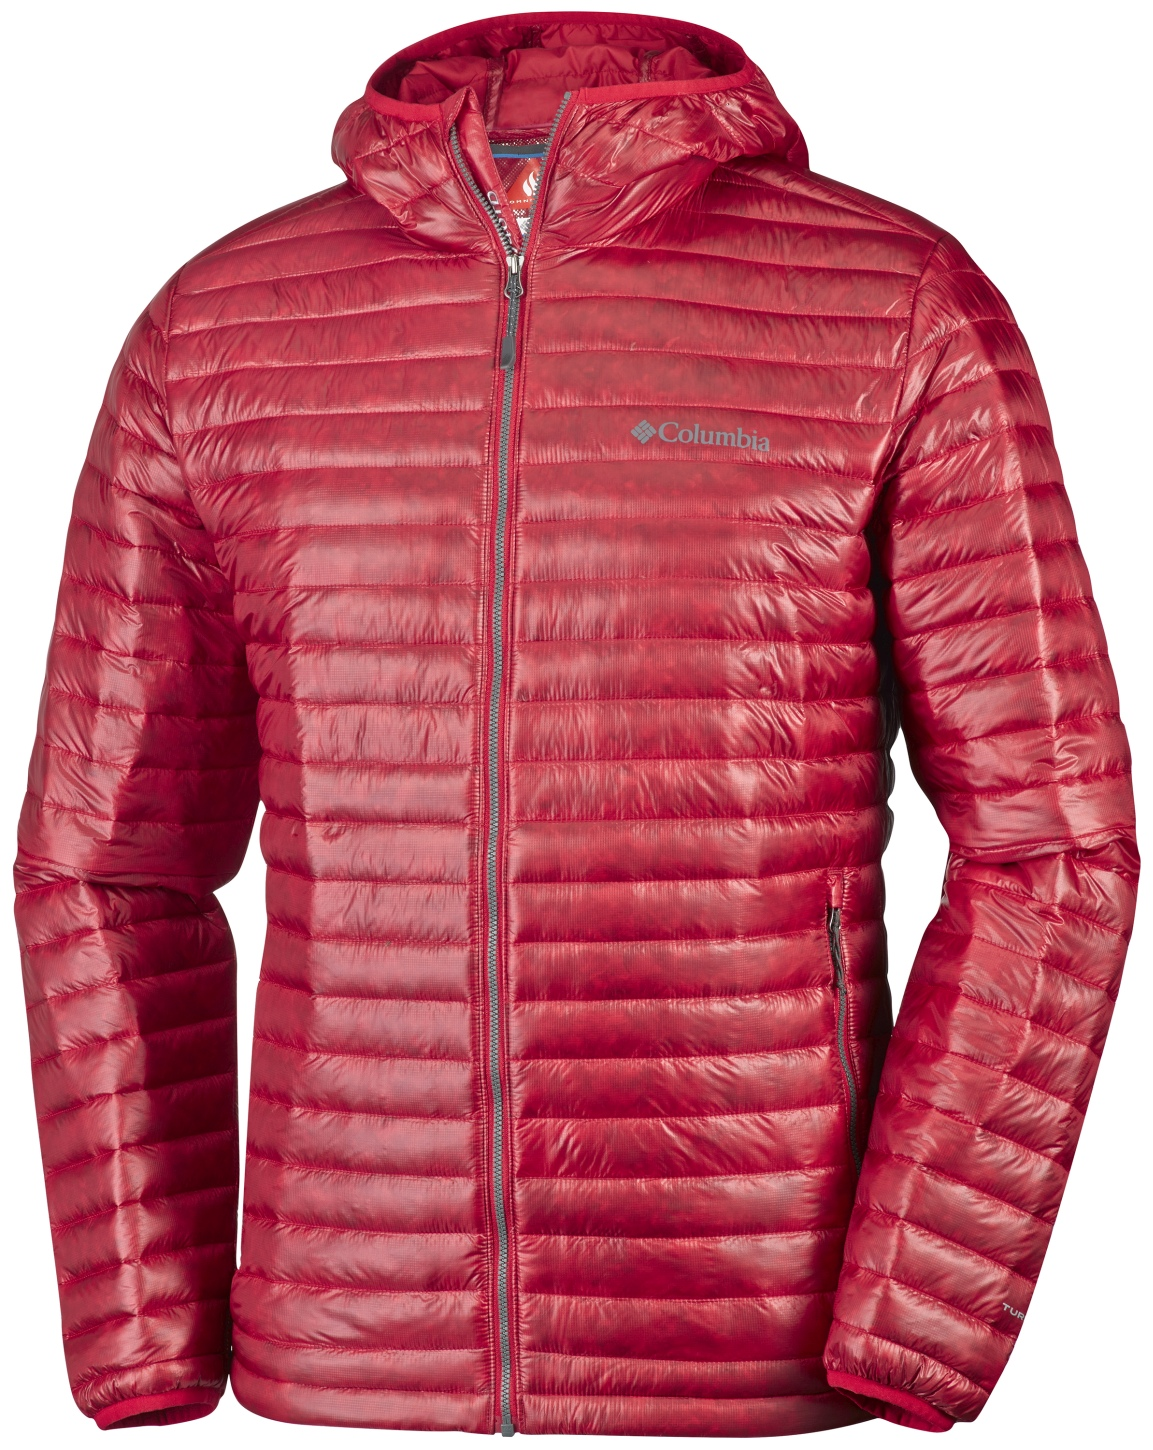 Columbia Platinum Plus 740 TurboDown Jacke mit Kapuze für Herren Mountain Red-30